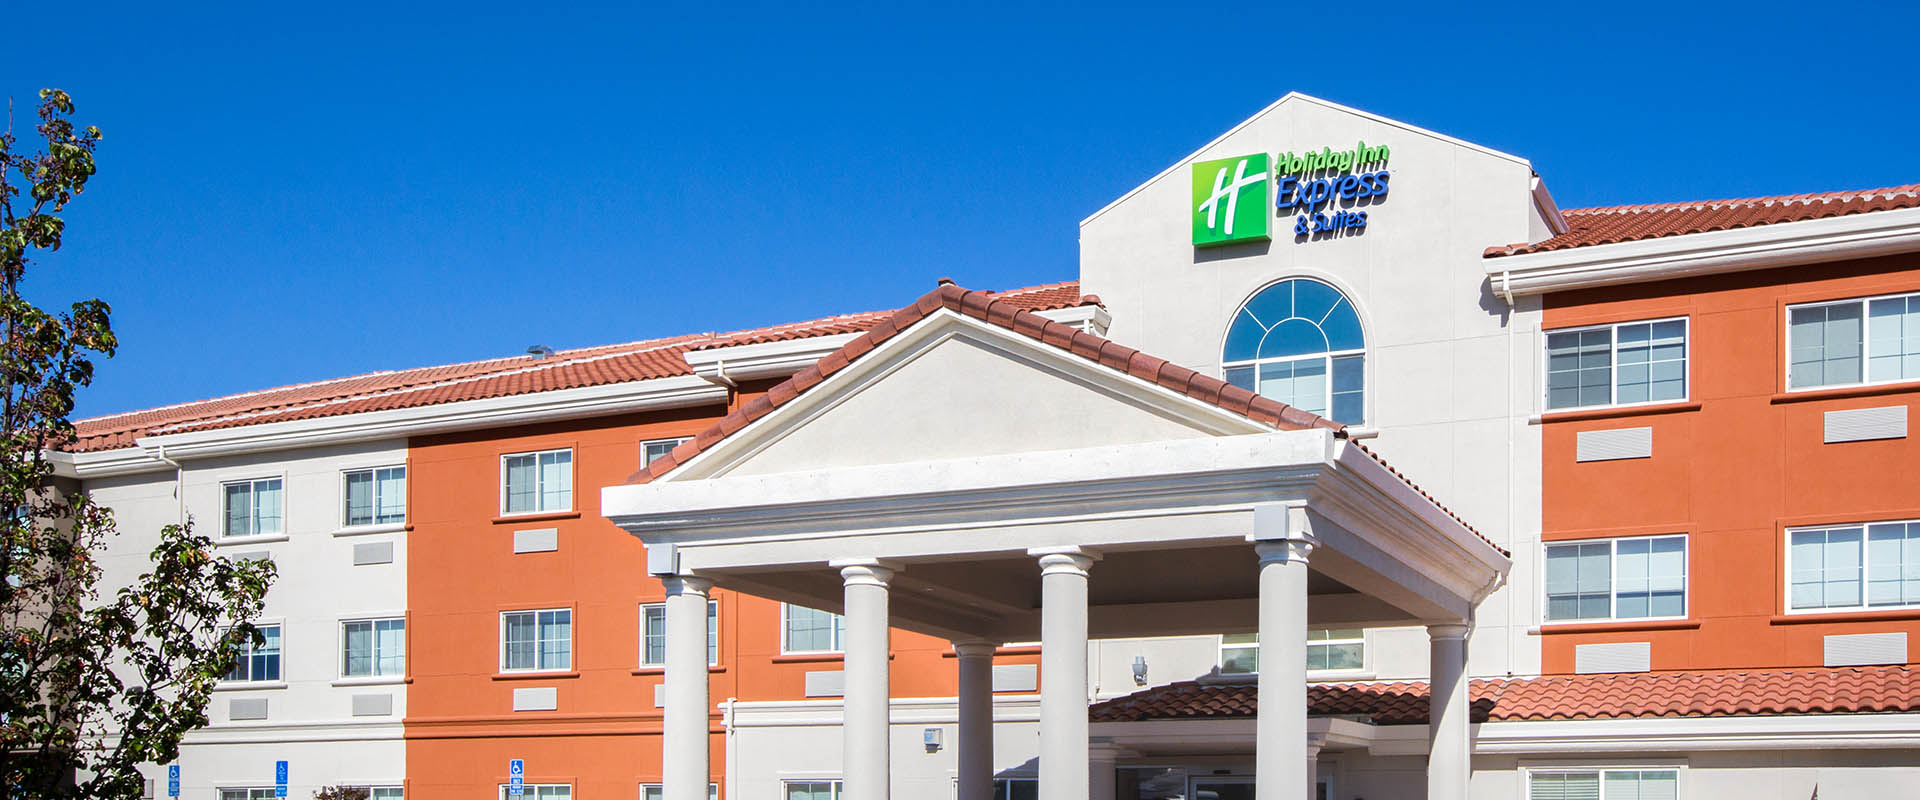 IHG hotel, Oroville, California, coporate, travel